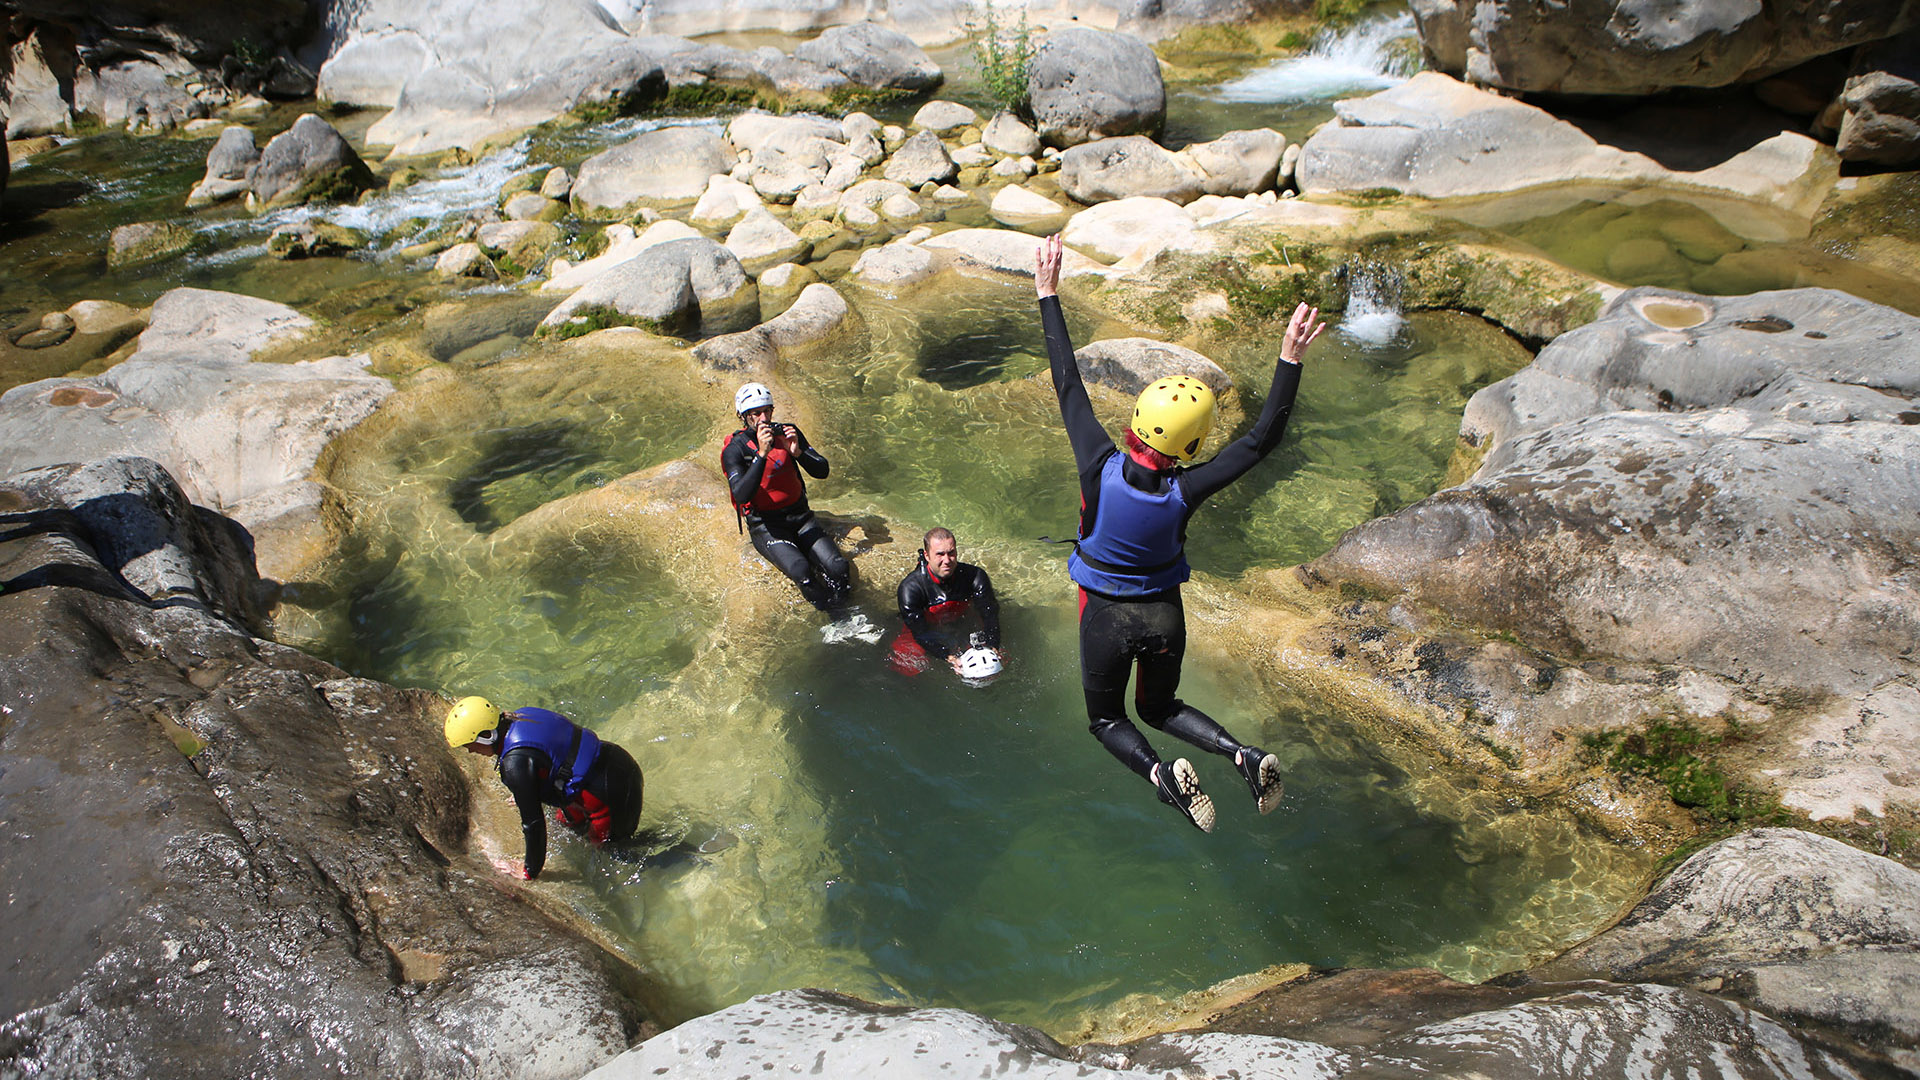 river canyoning adrenaline adventure 5